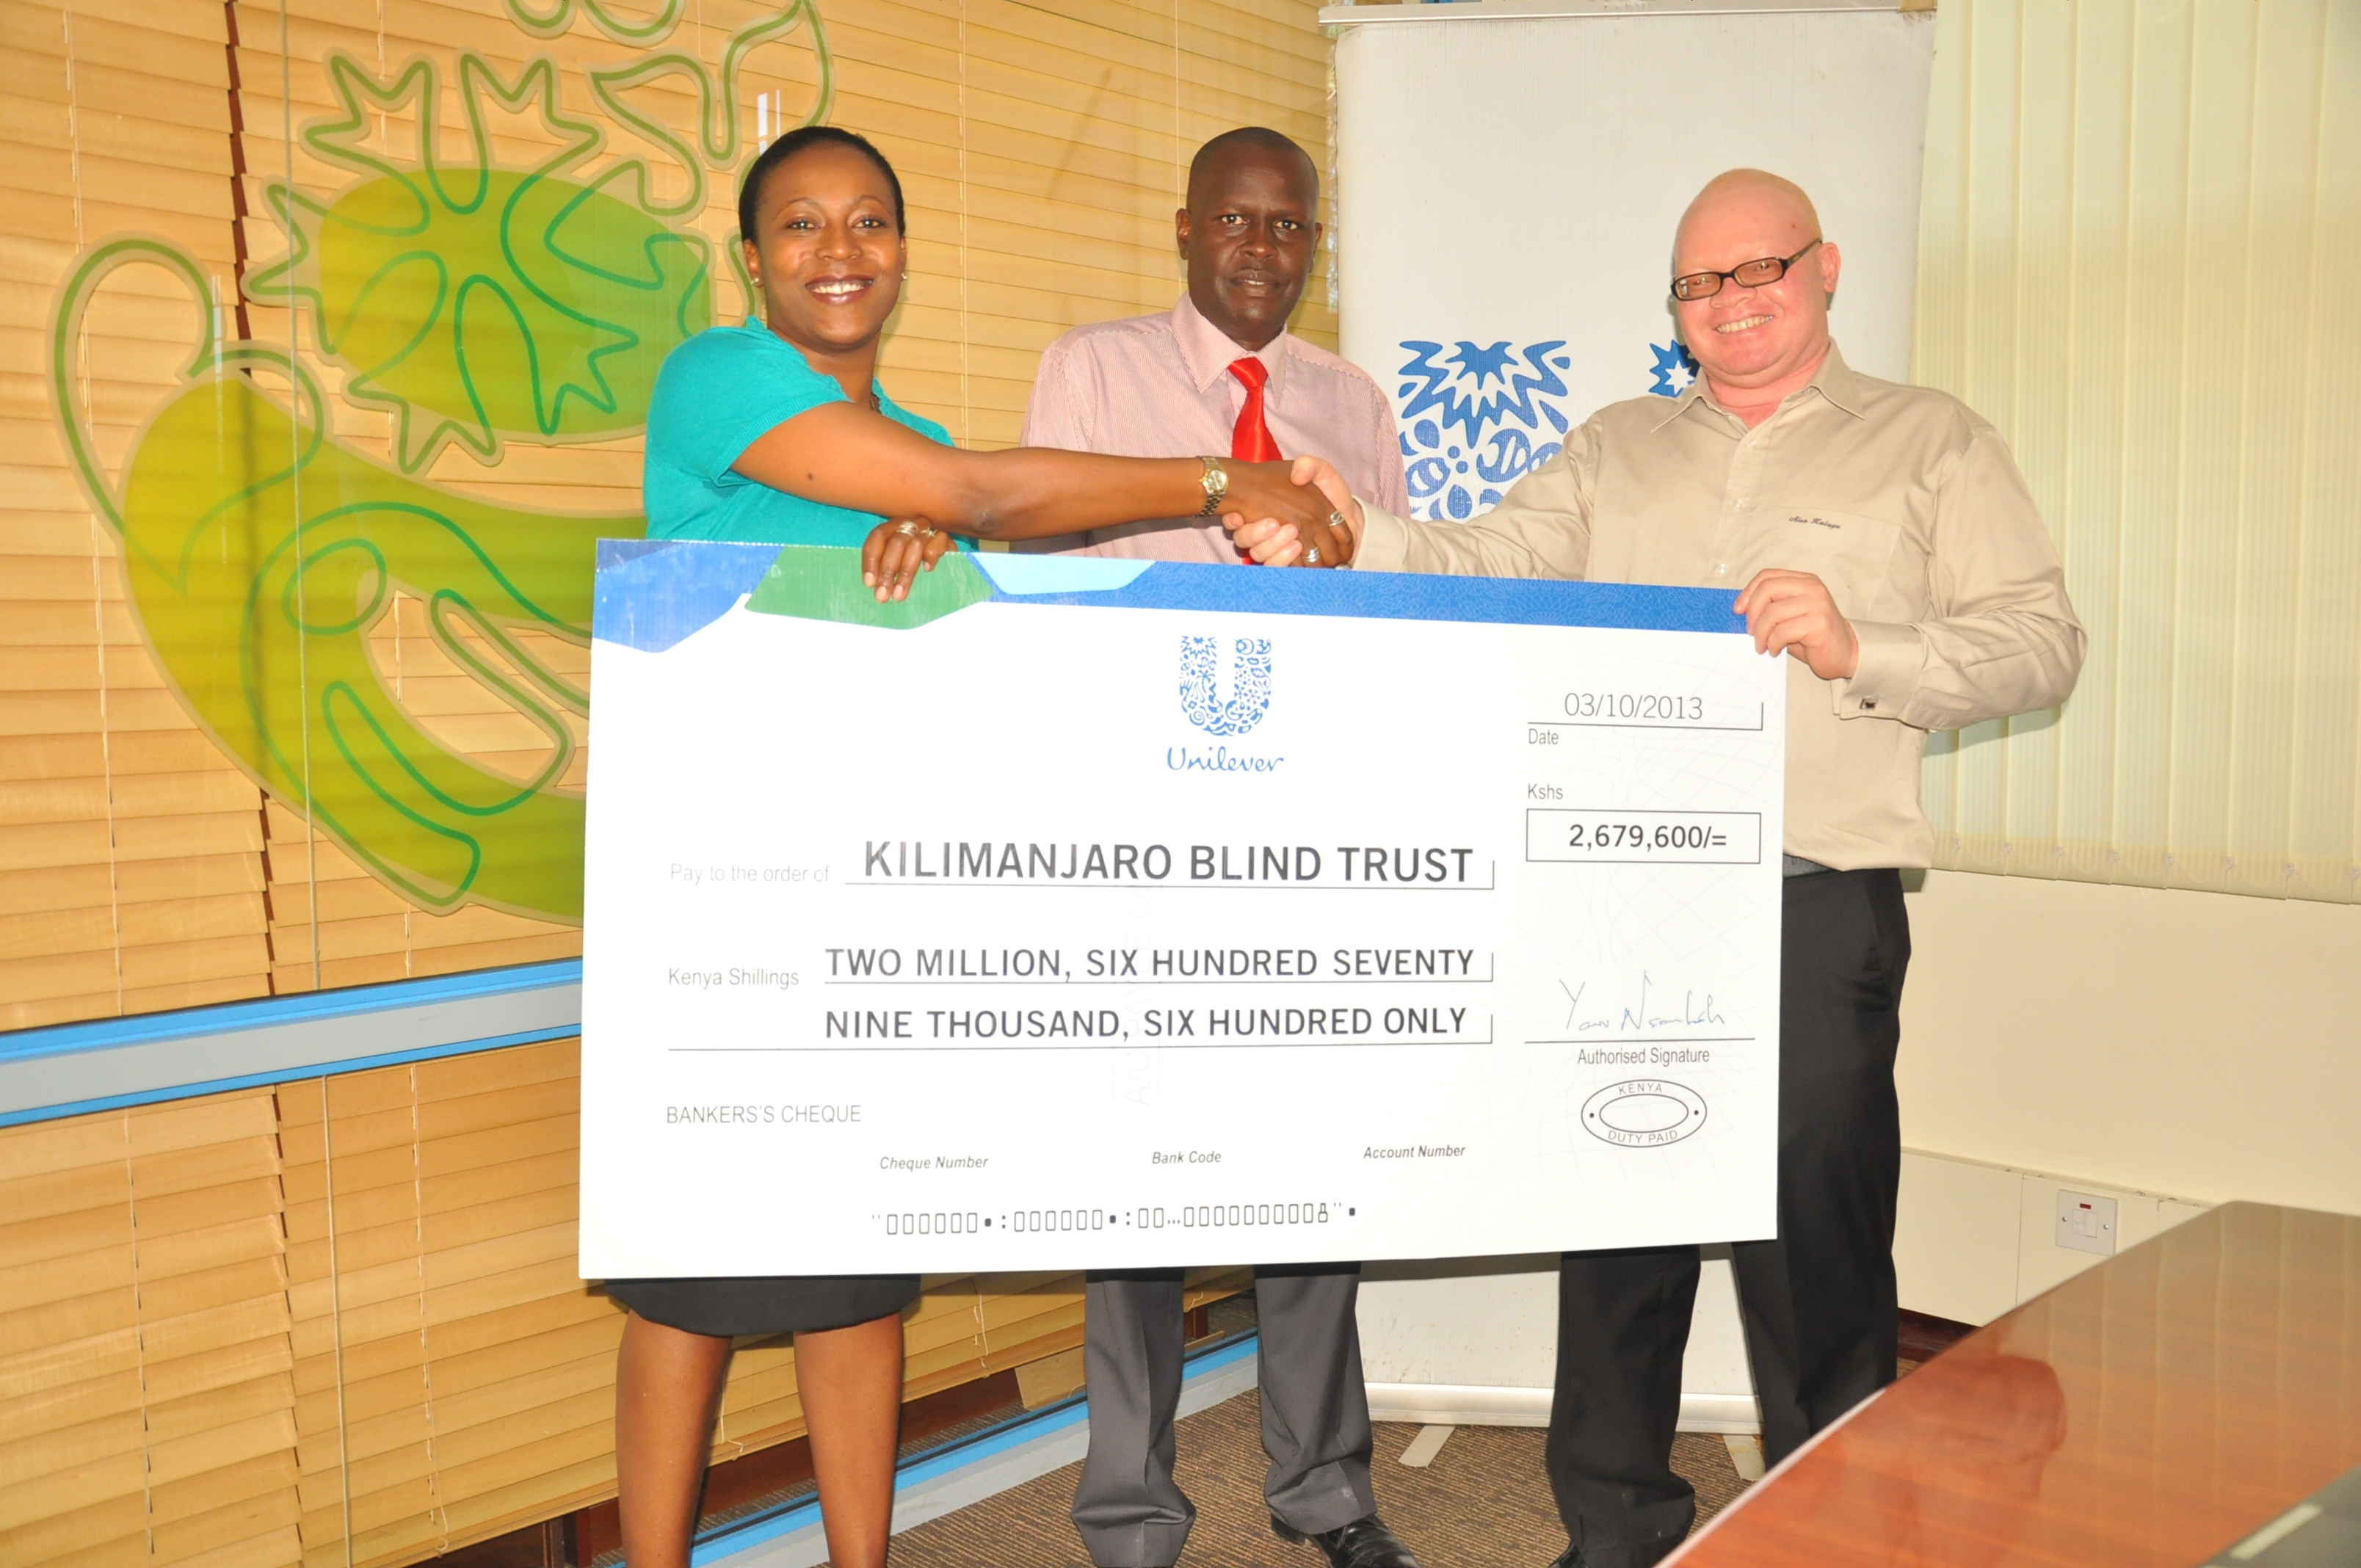 Susan handing KBT grant to Juma and Alex